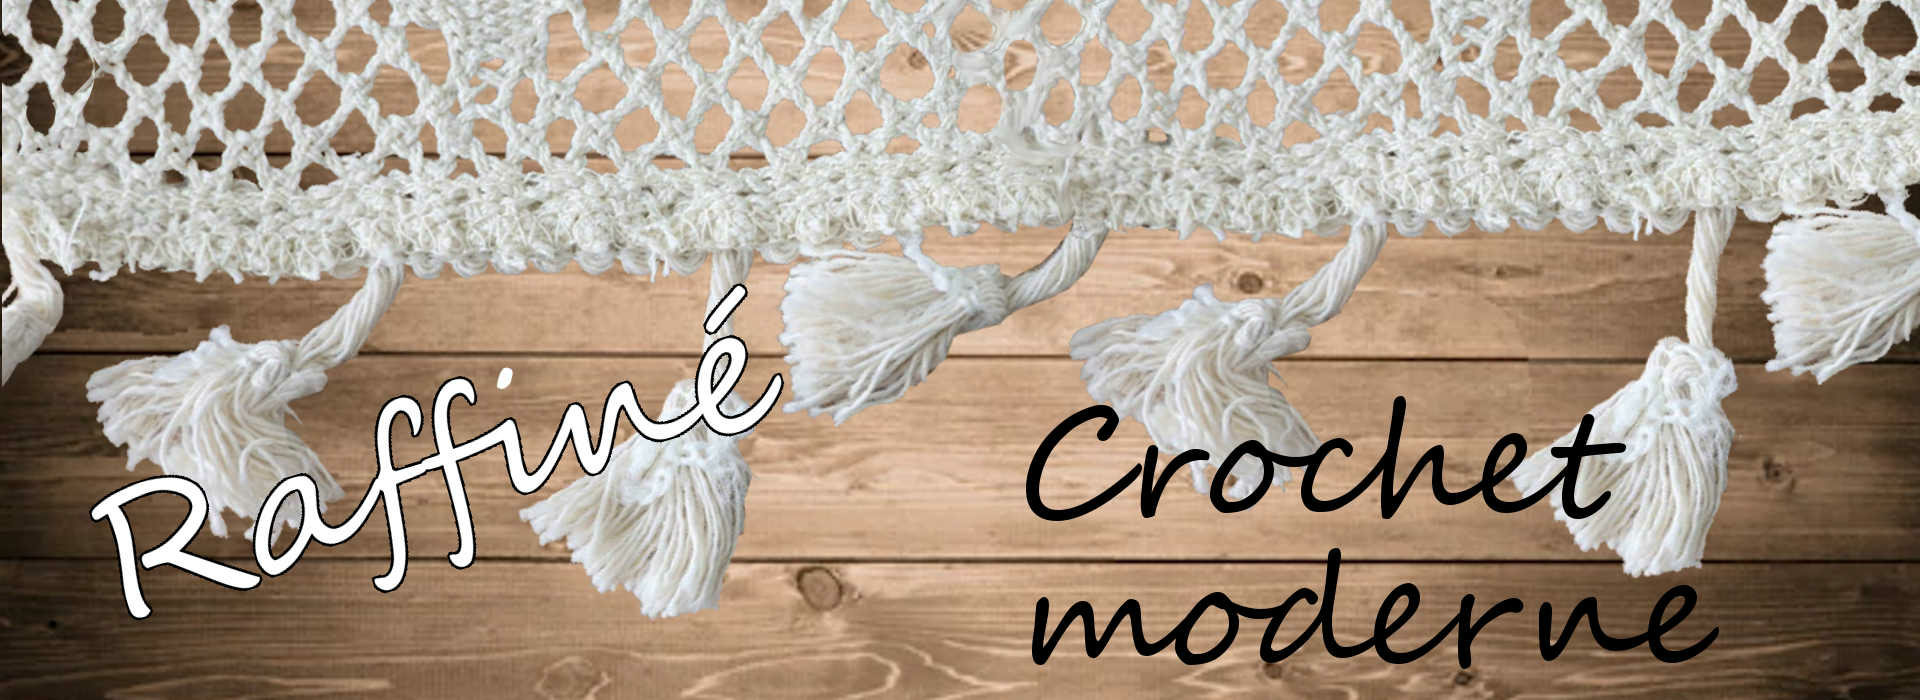 Chemin-de-table-au-crochet-filet